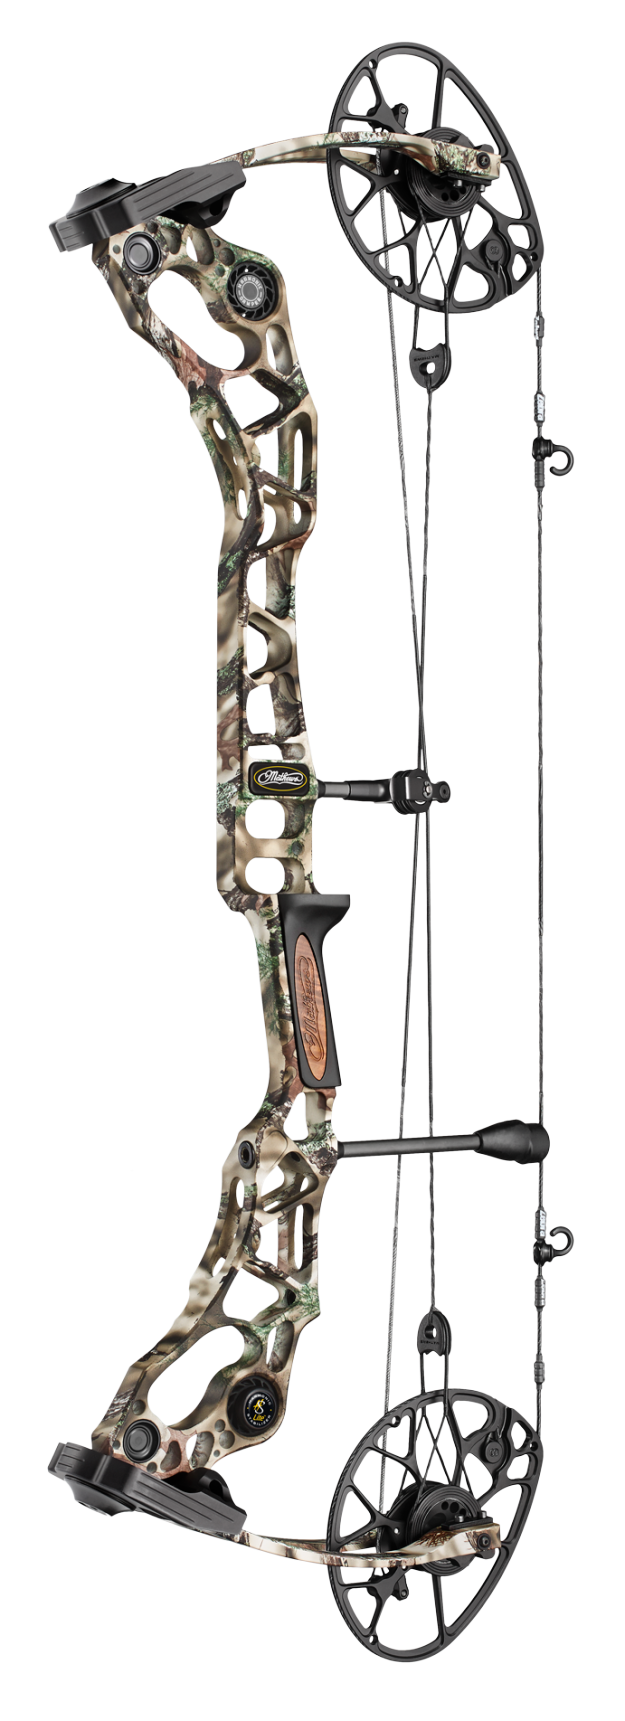 Mathews Halon Review